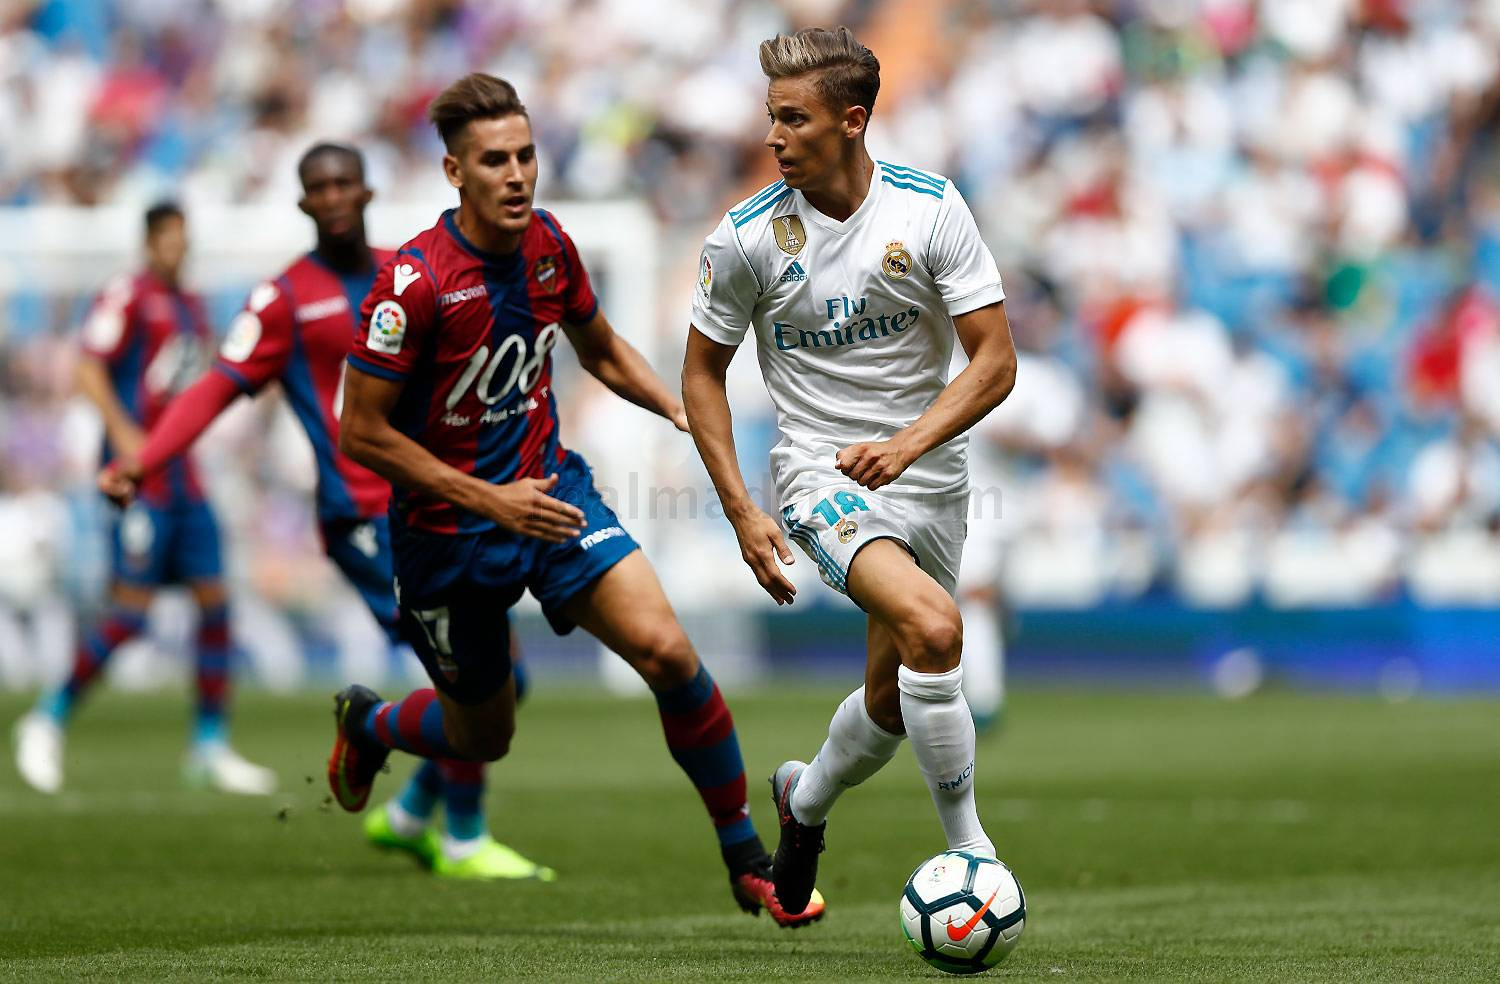 Real Madrid - Real Madrid - Levante - 09-09-2017